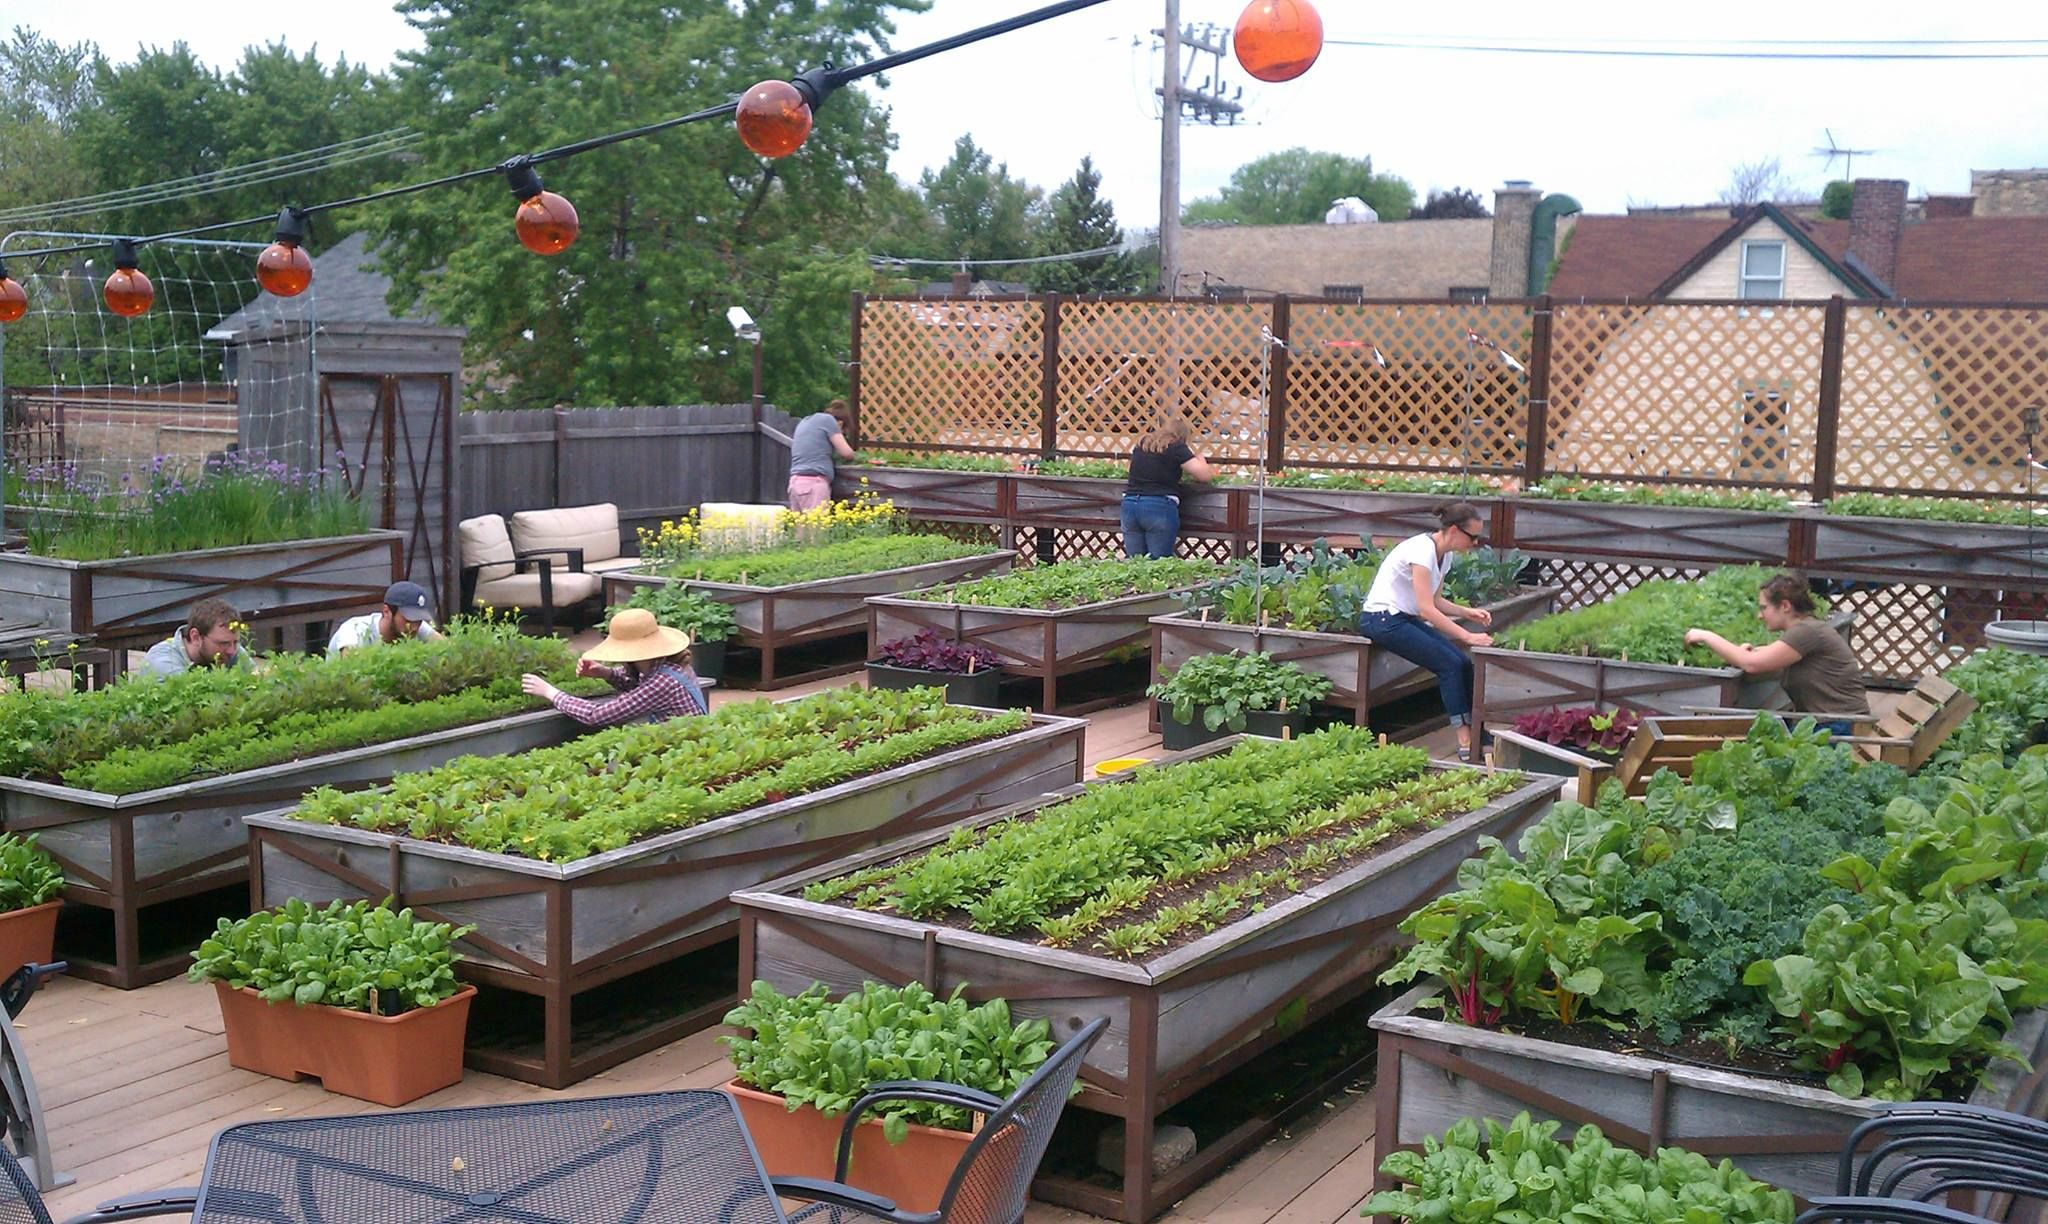 10 Rooftop Vegetable Garden Ideas Most Of The Awesome As Well As